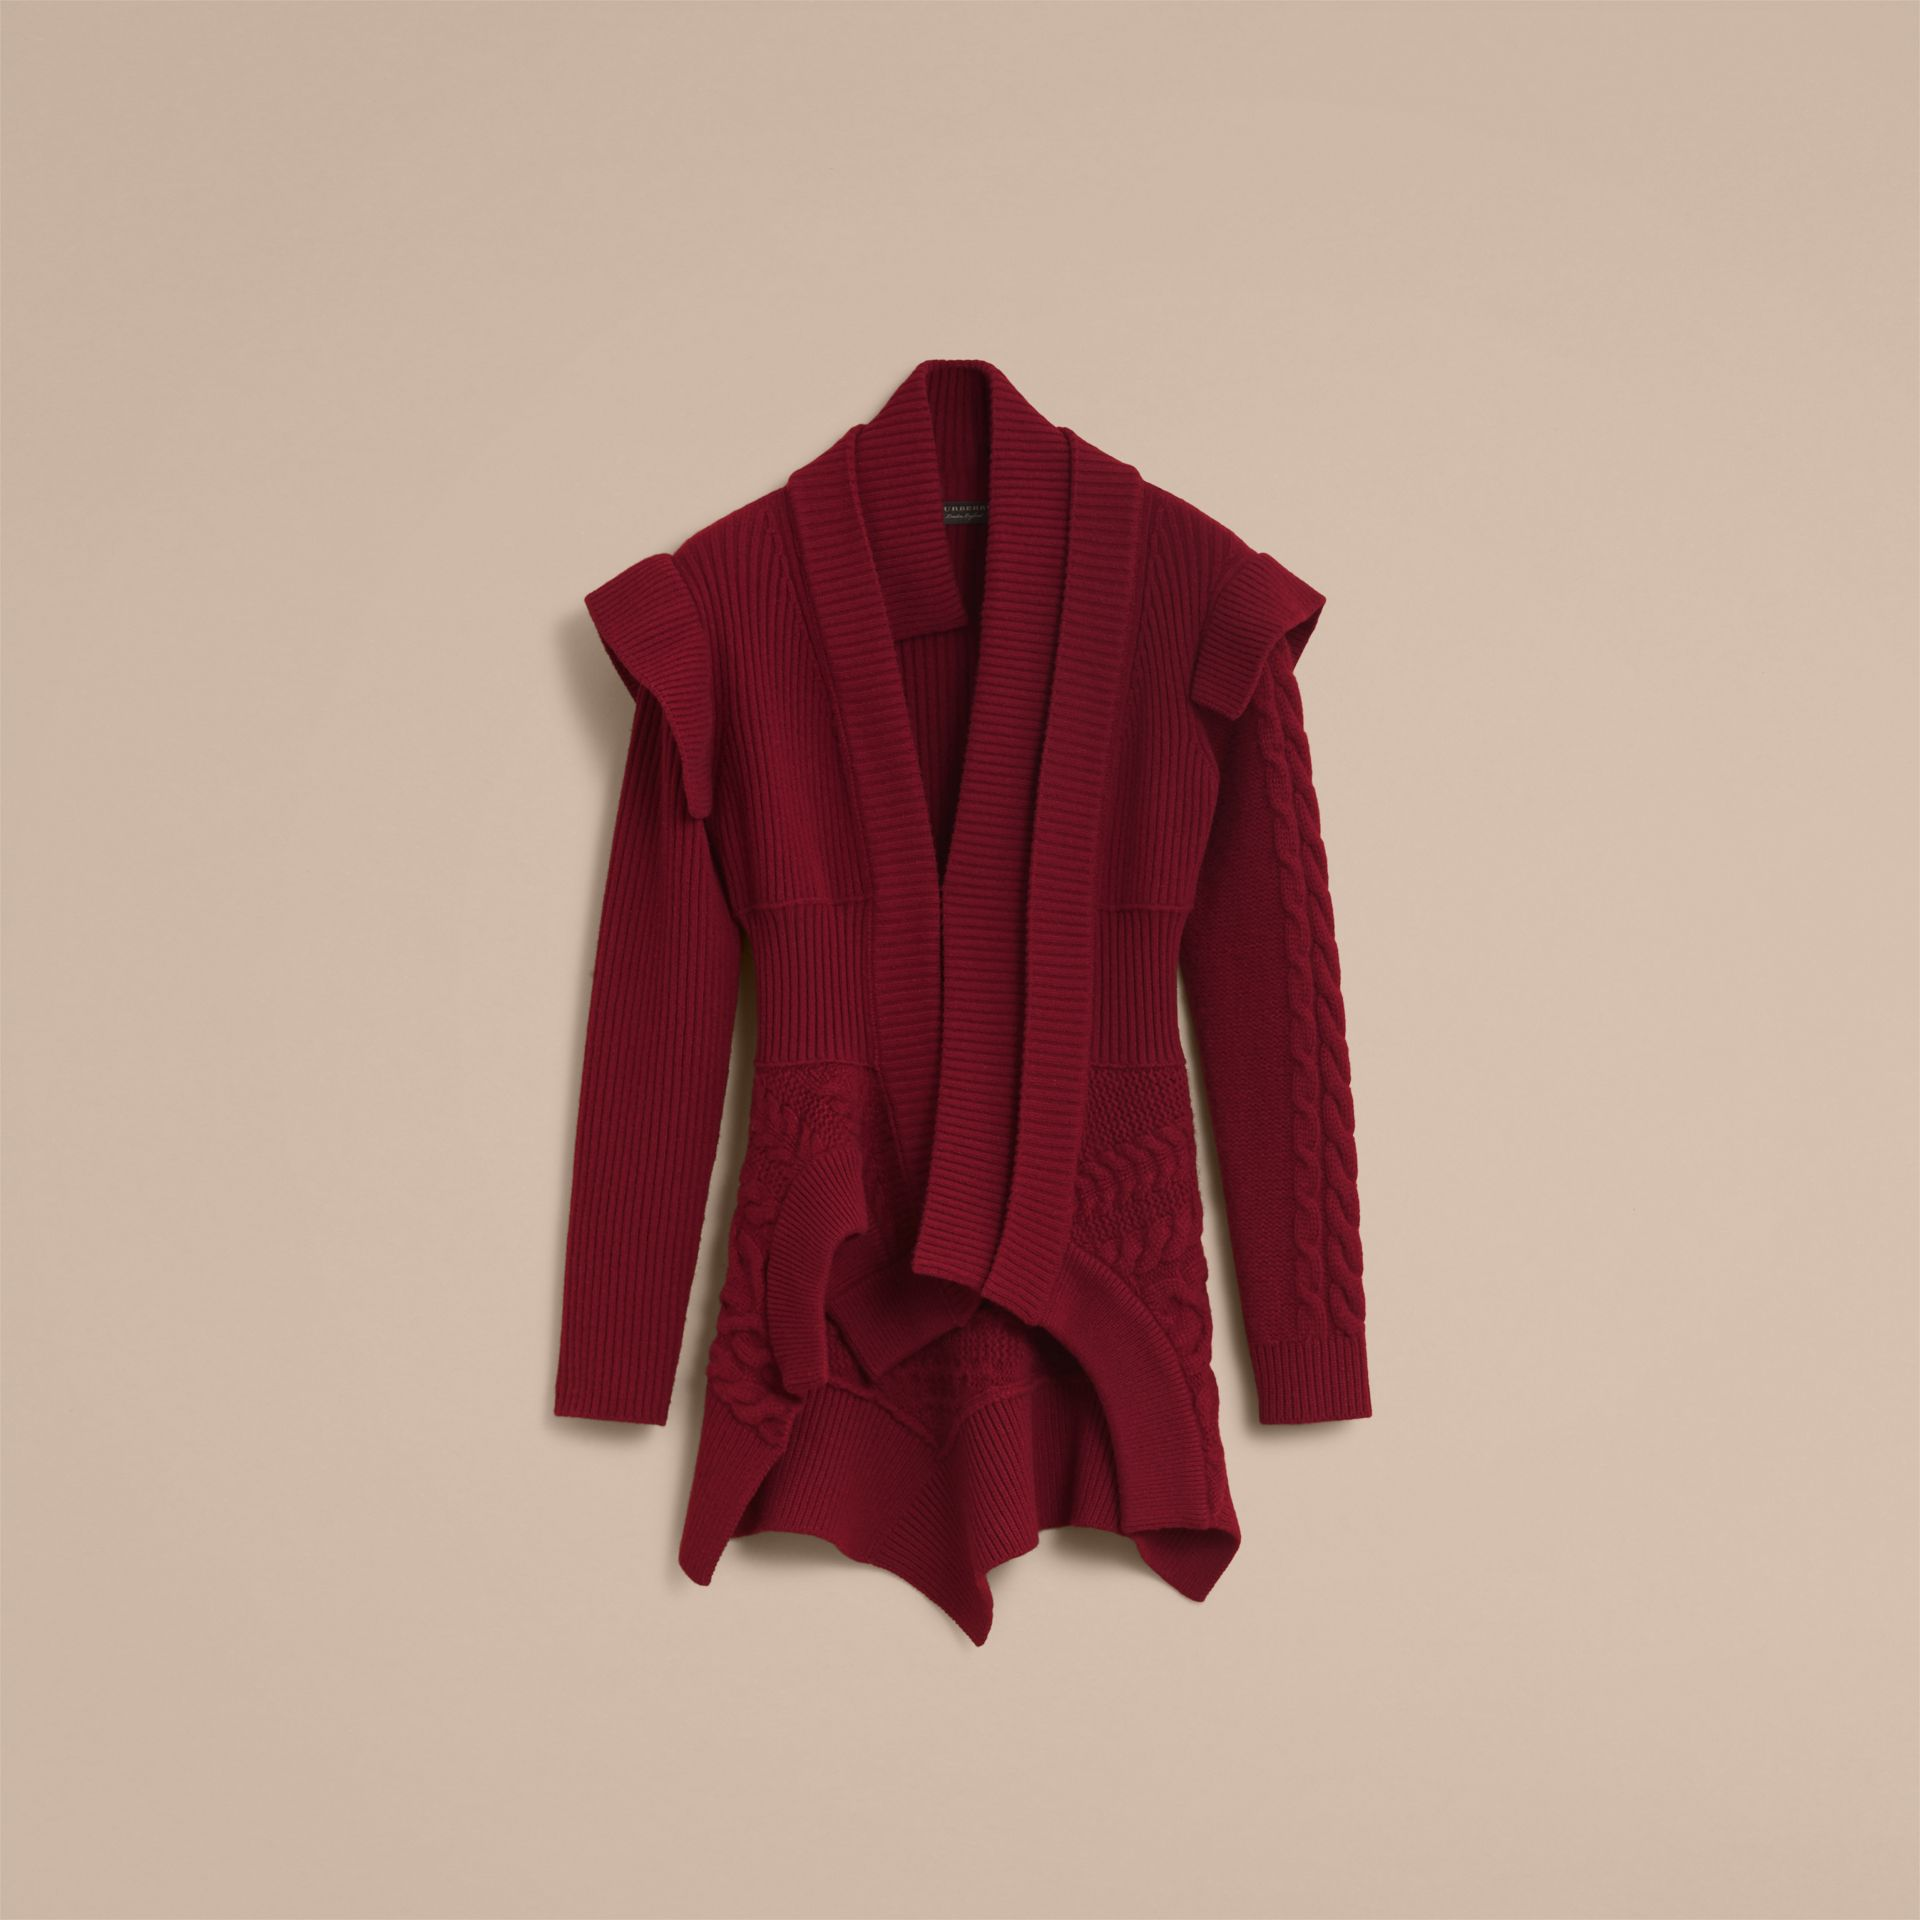 Knitted Wool Cashmere Military-inspired Jacket in Bordeaux - Women | Burberry Singapore - gallery image 4